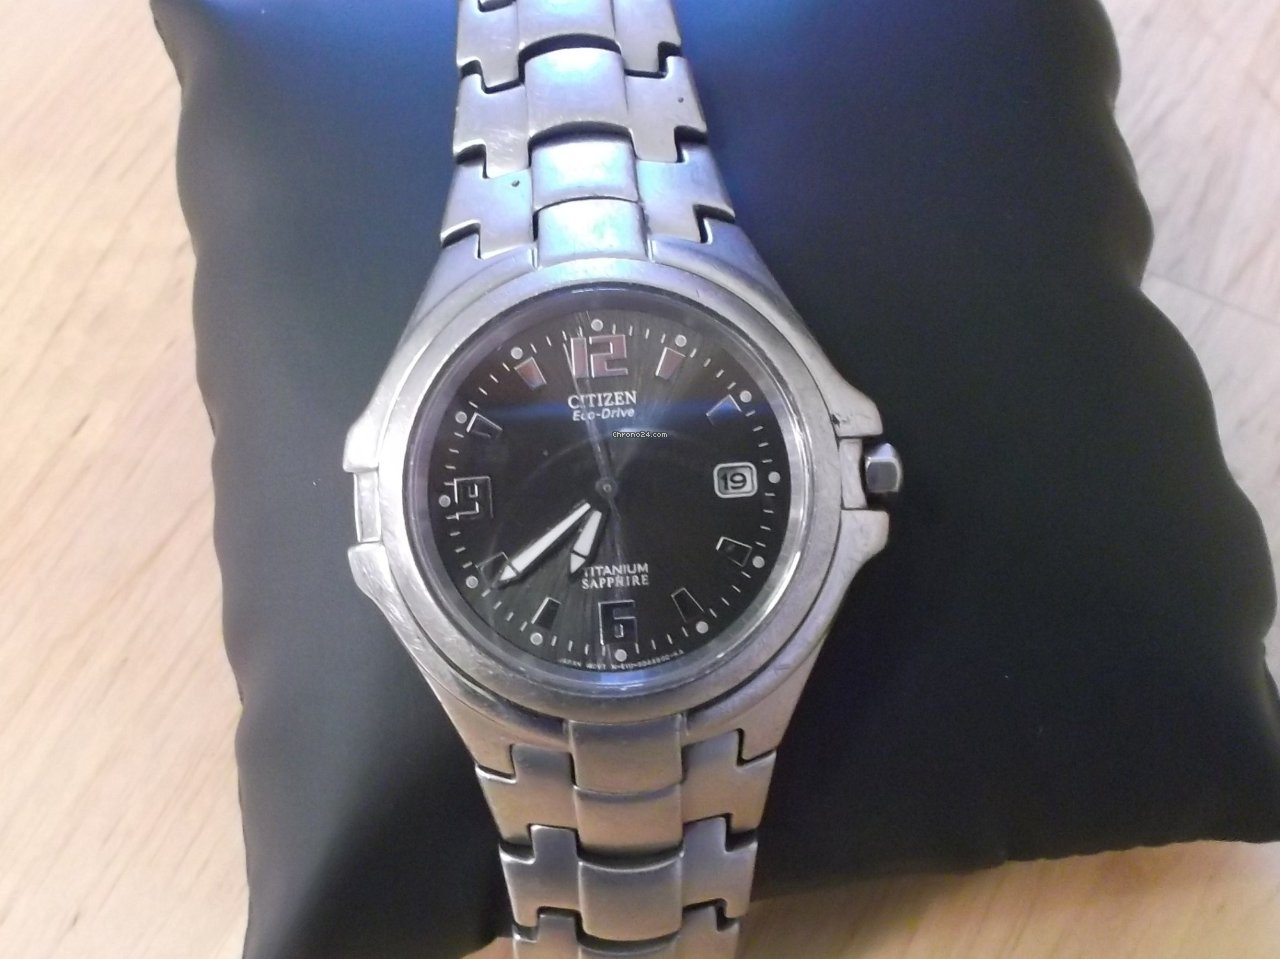 Citizen Eco Drive Marinaut E111 for R 949 for sale from a Private Seller on  Chrono24 70d94fc769